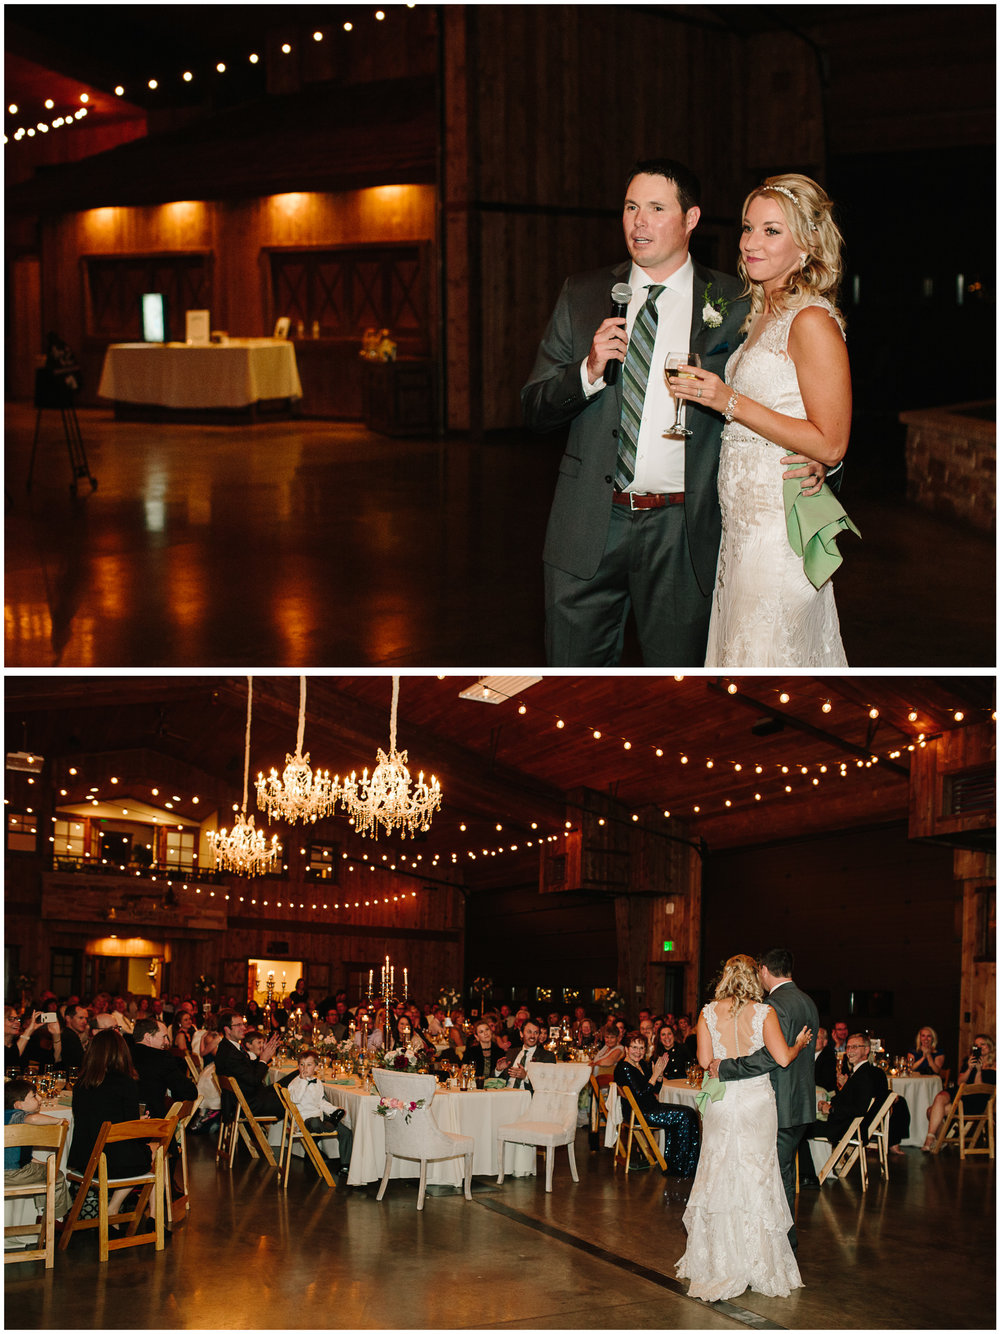 spruce_mountain_ranch_wedding_71.jpg